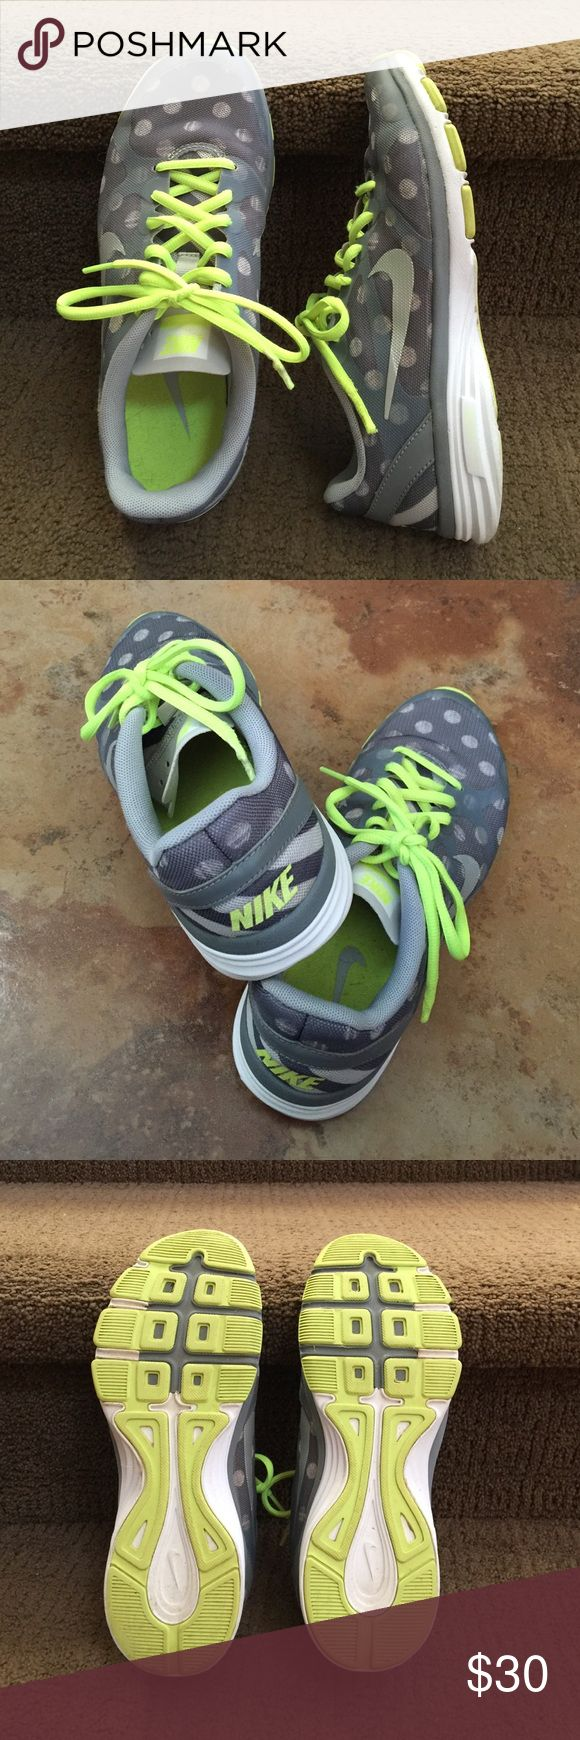 Nike Dual Fusion running shoes Nike dual fusion running shoes in grey and green polka dot, lightweight, soft and cushioned. Really cute! Used but in good condition. Nike Shoes Athletic Shoes